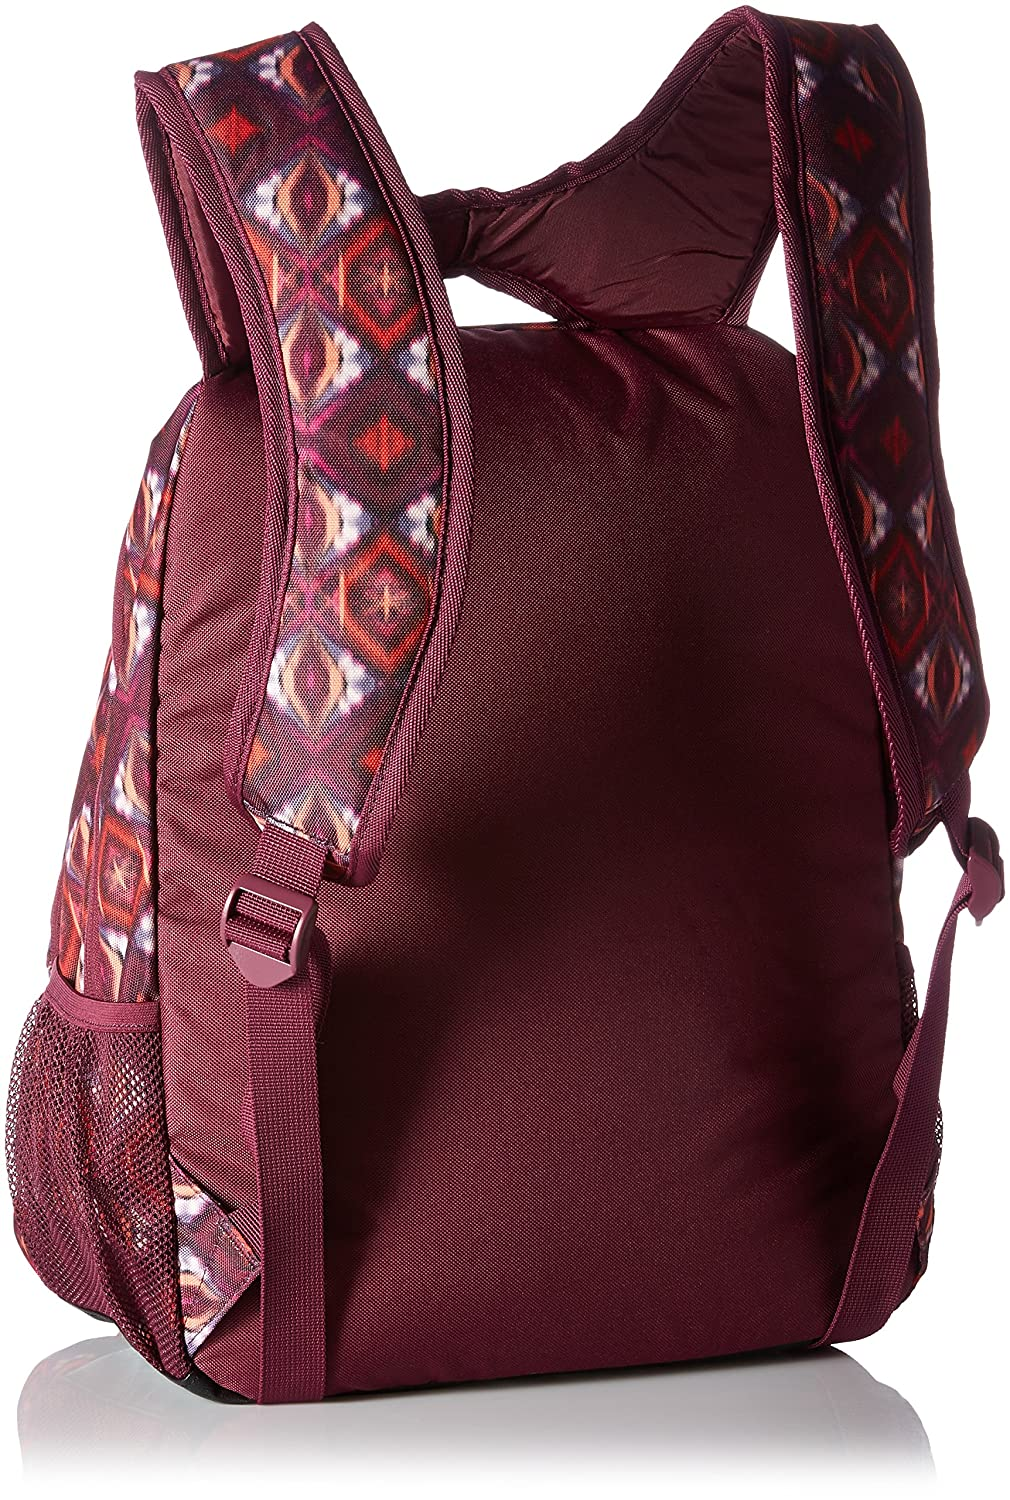 Roxy Womens Shadow Swell Backpack Grapewine Gerona Nights One Size Roxy Juniors Sportswear ERJBP03459